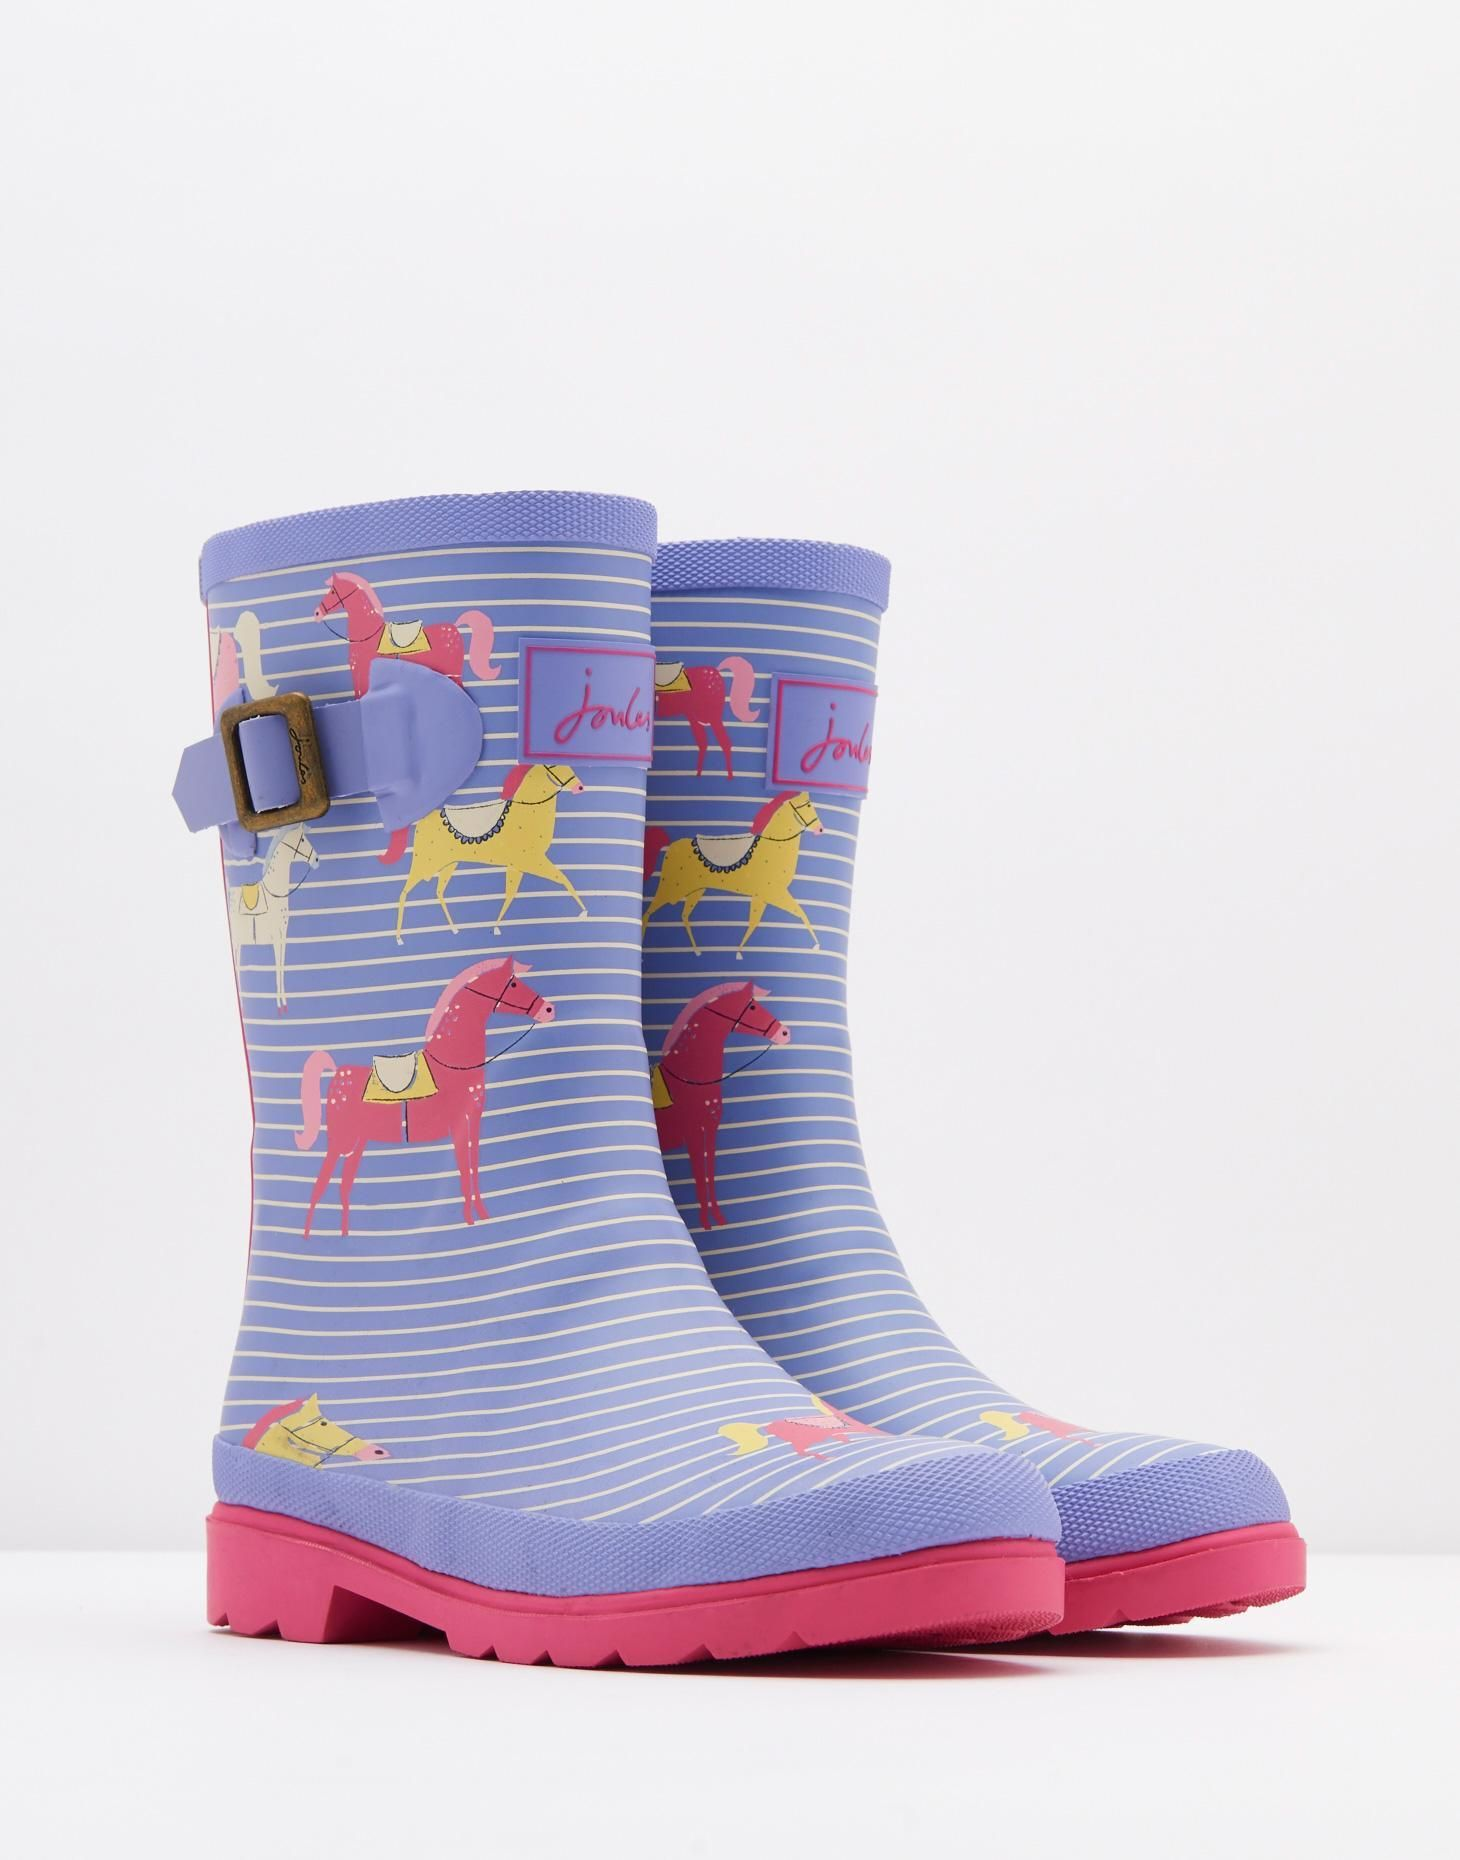 8d4e33b1d2800 Jnrgirlswelly Lavender Horse Printed Rain Boots | Joules US ...